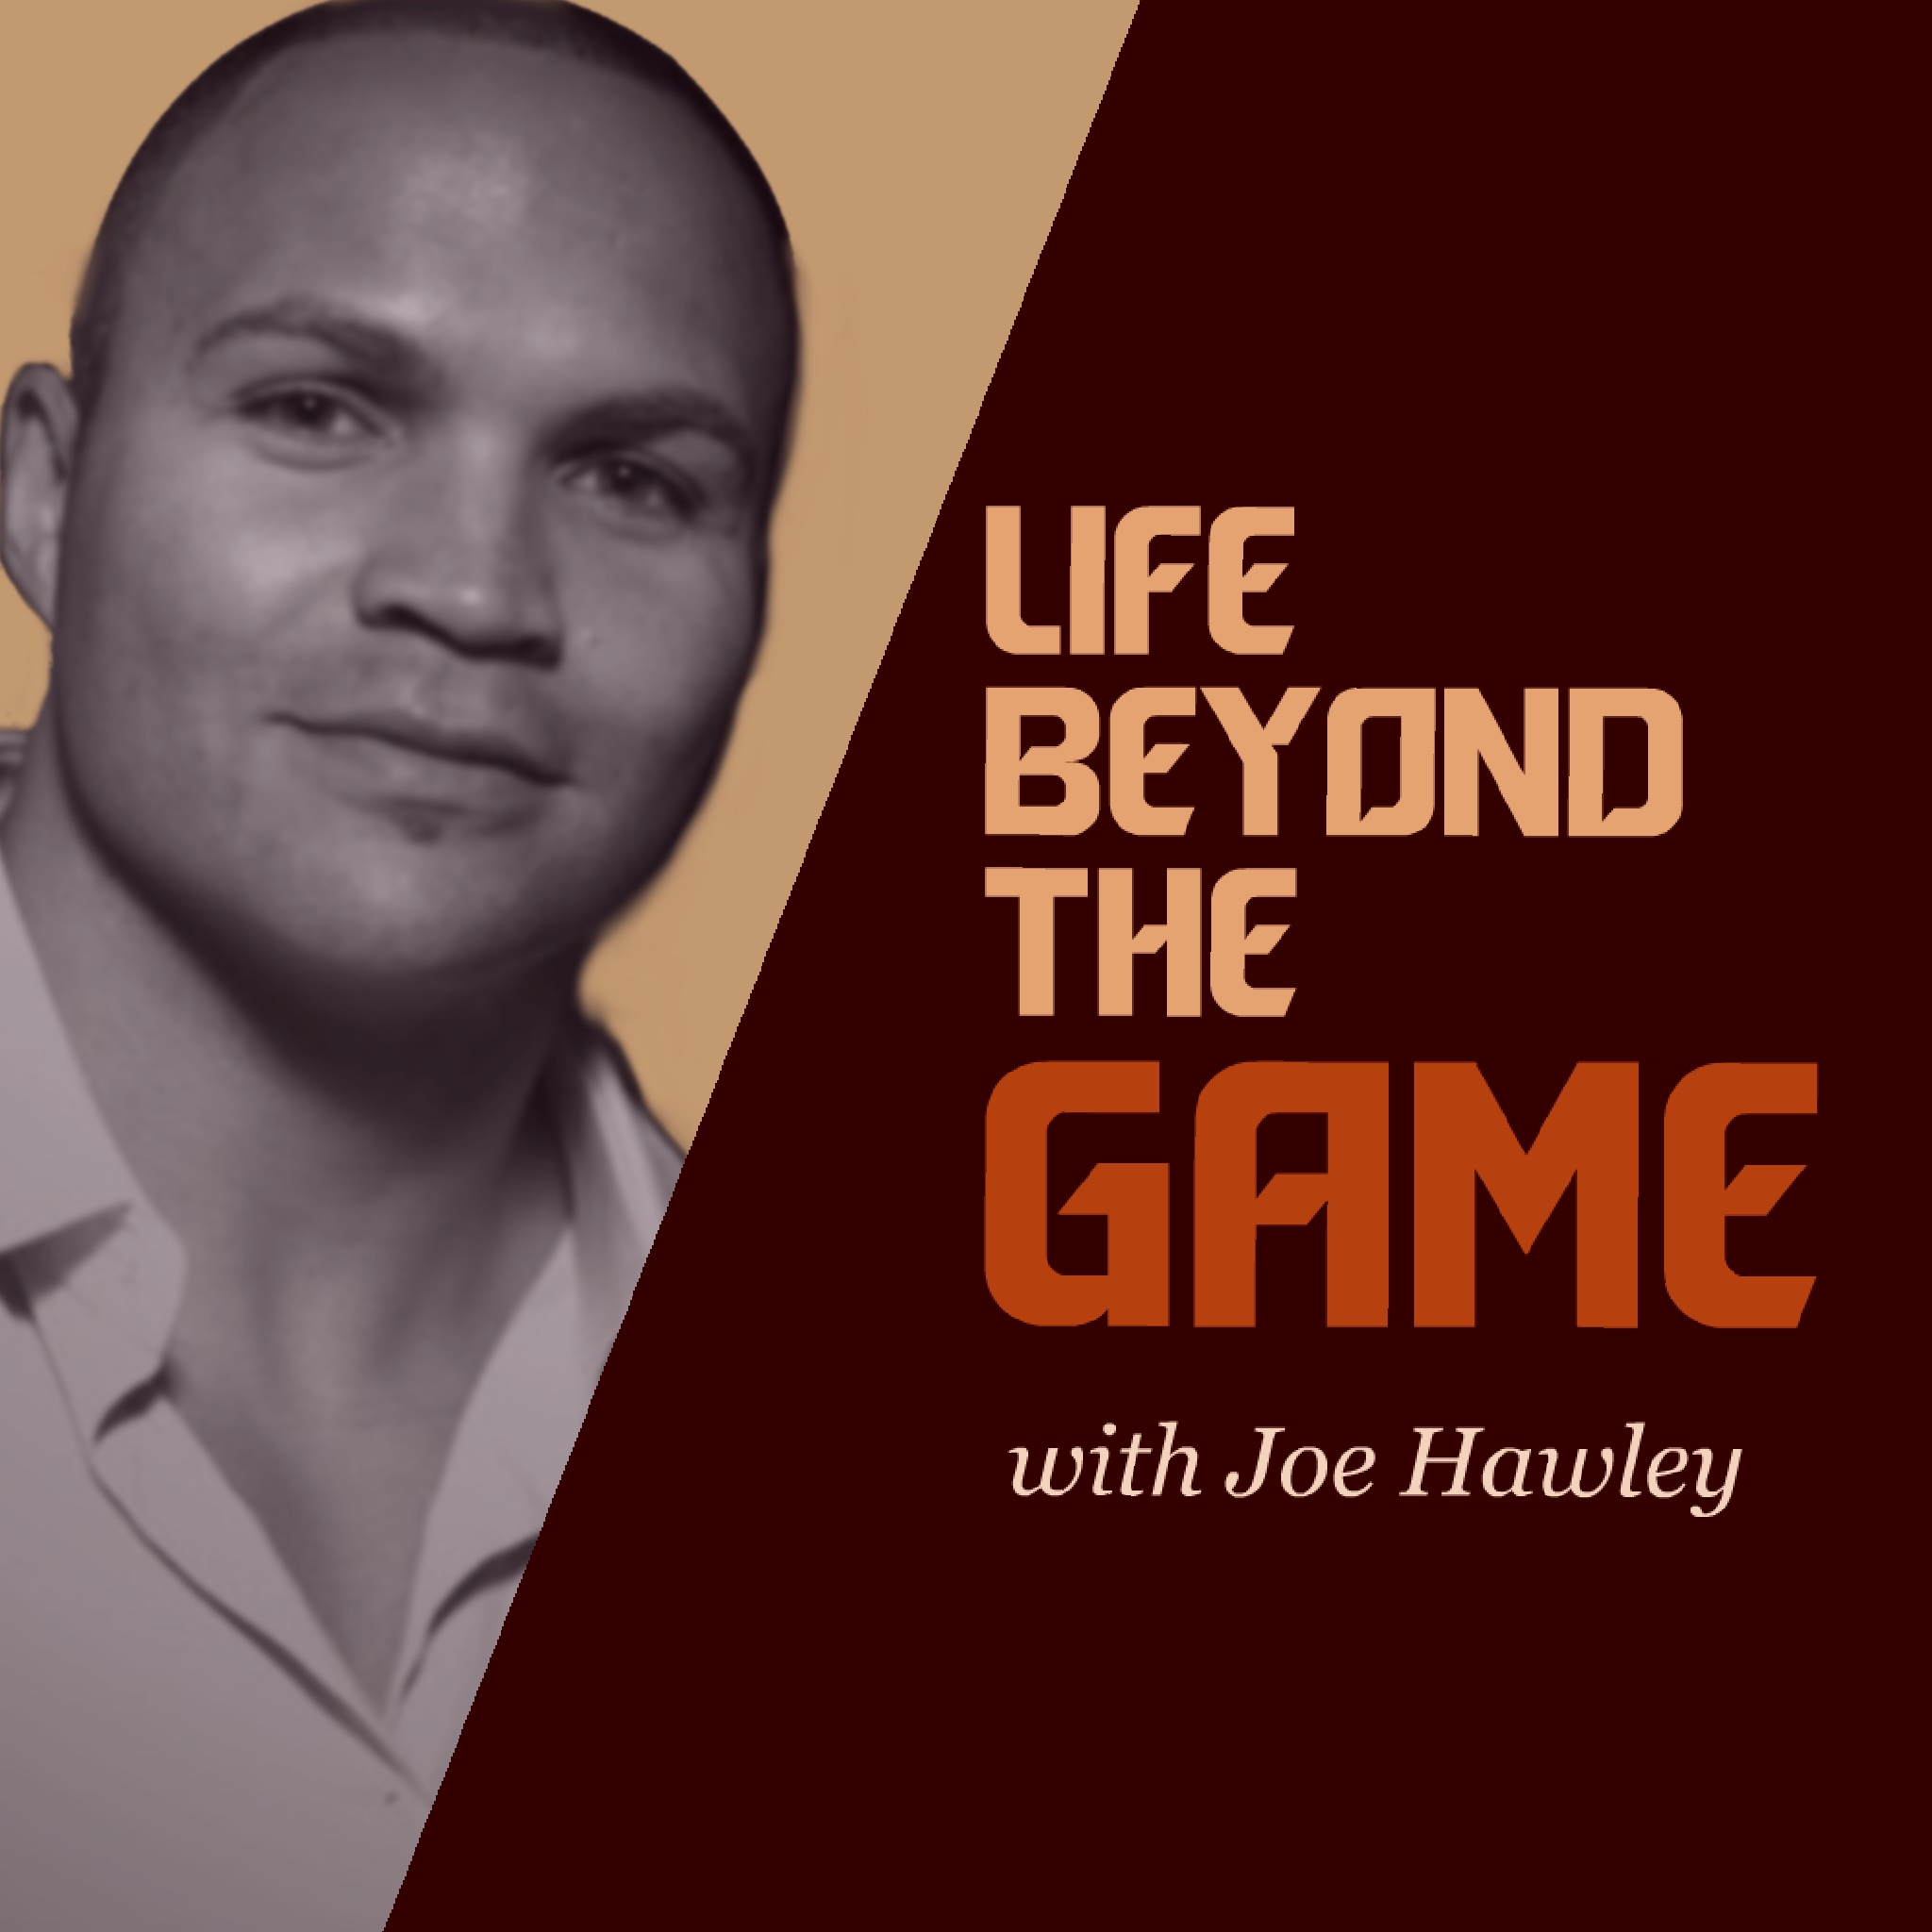 Femi Ayanbadejo, former NFL and founder of HealthReel on Life Beyond the Game podcast with Joe Hawley